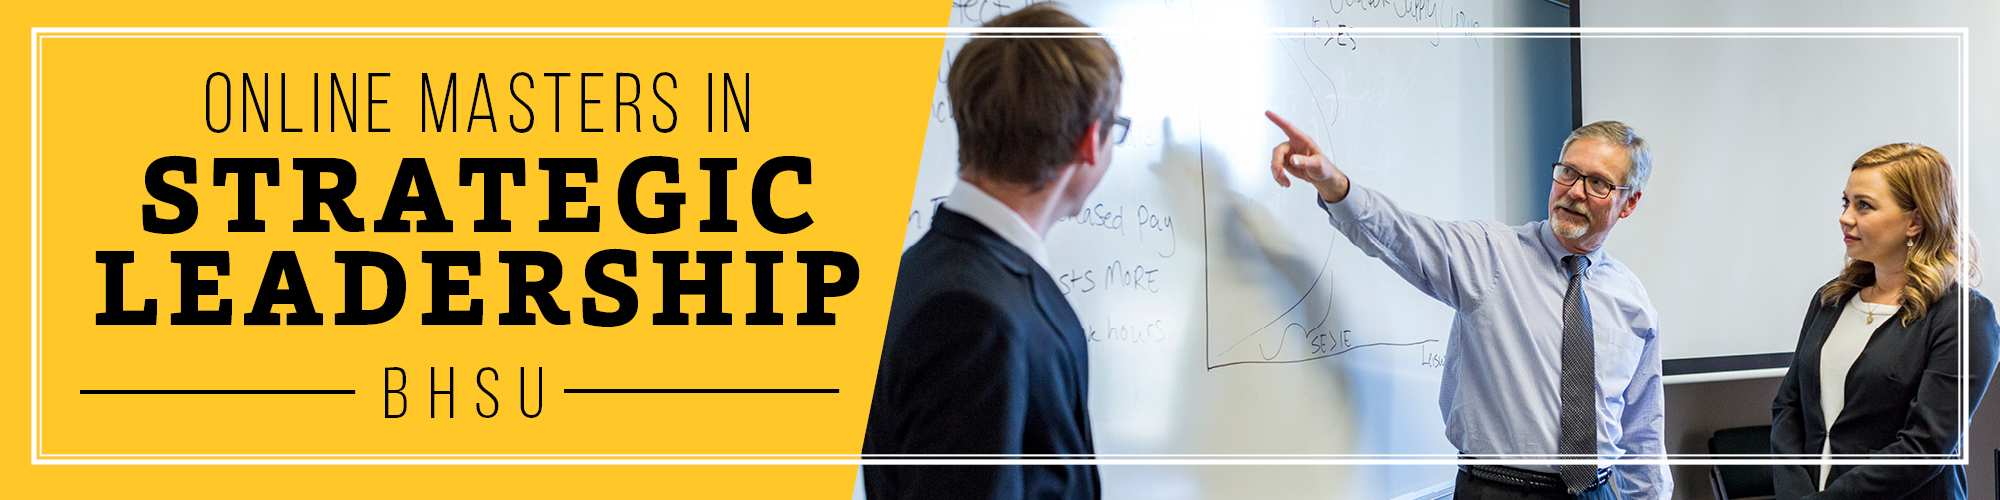 Earn your masters degree online with BHSU's Masters of Science in Strategic Leadership.